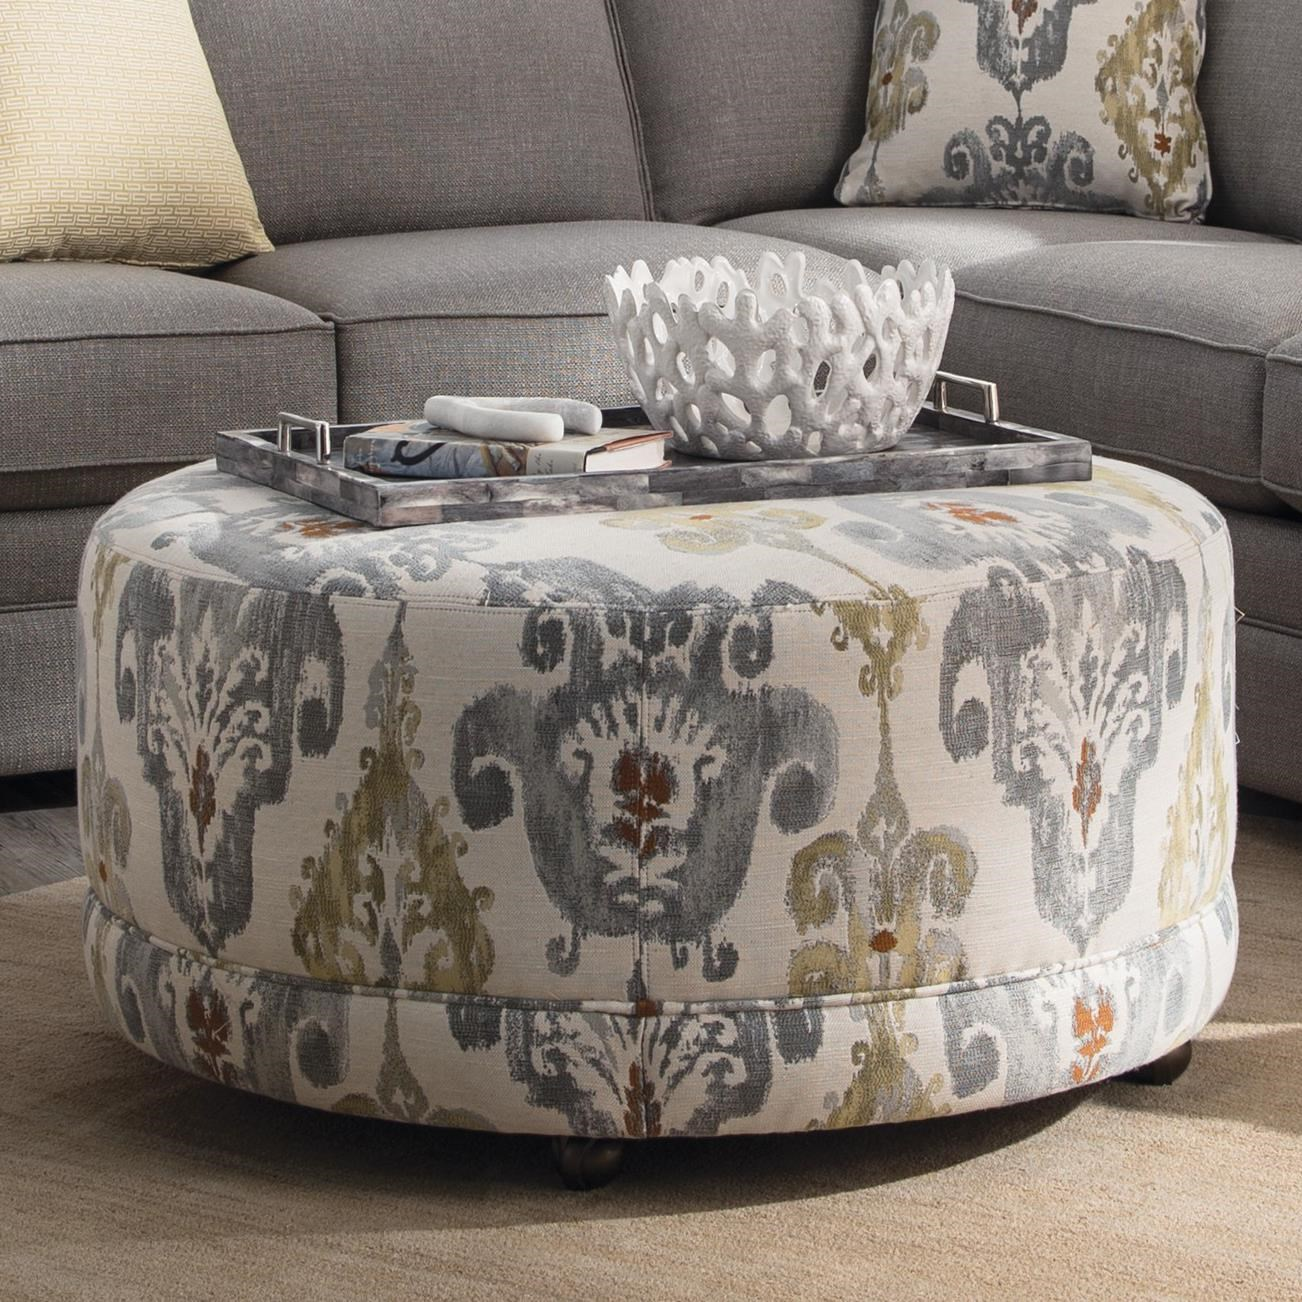 accent ottomans round contemporary ottoman with casters by hickory craft at godby home furnishings